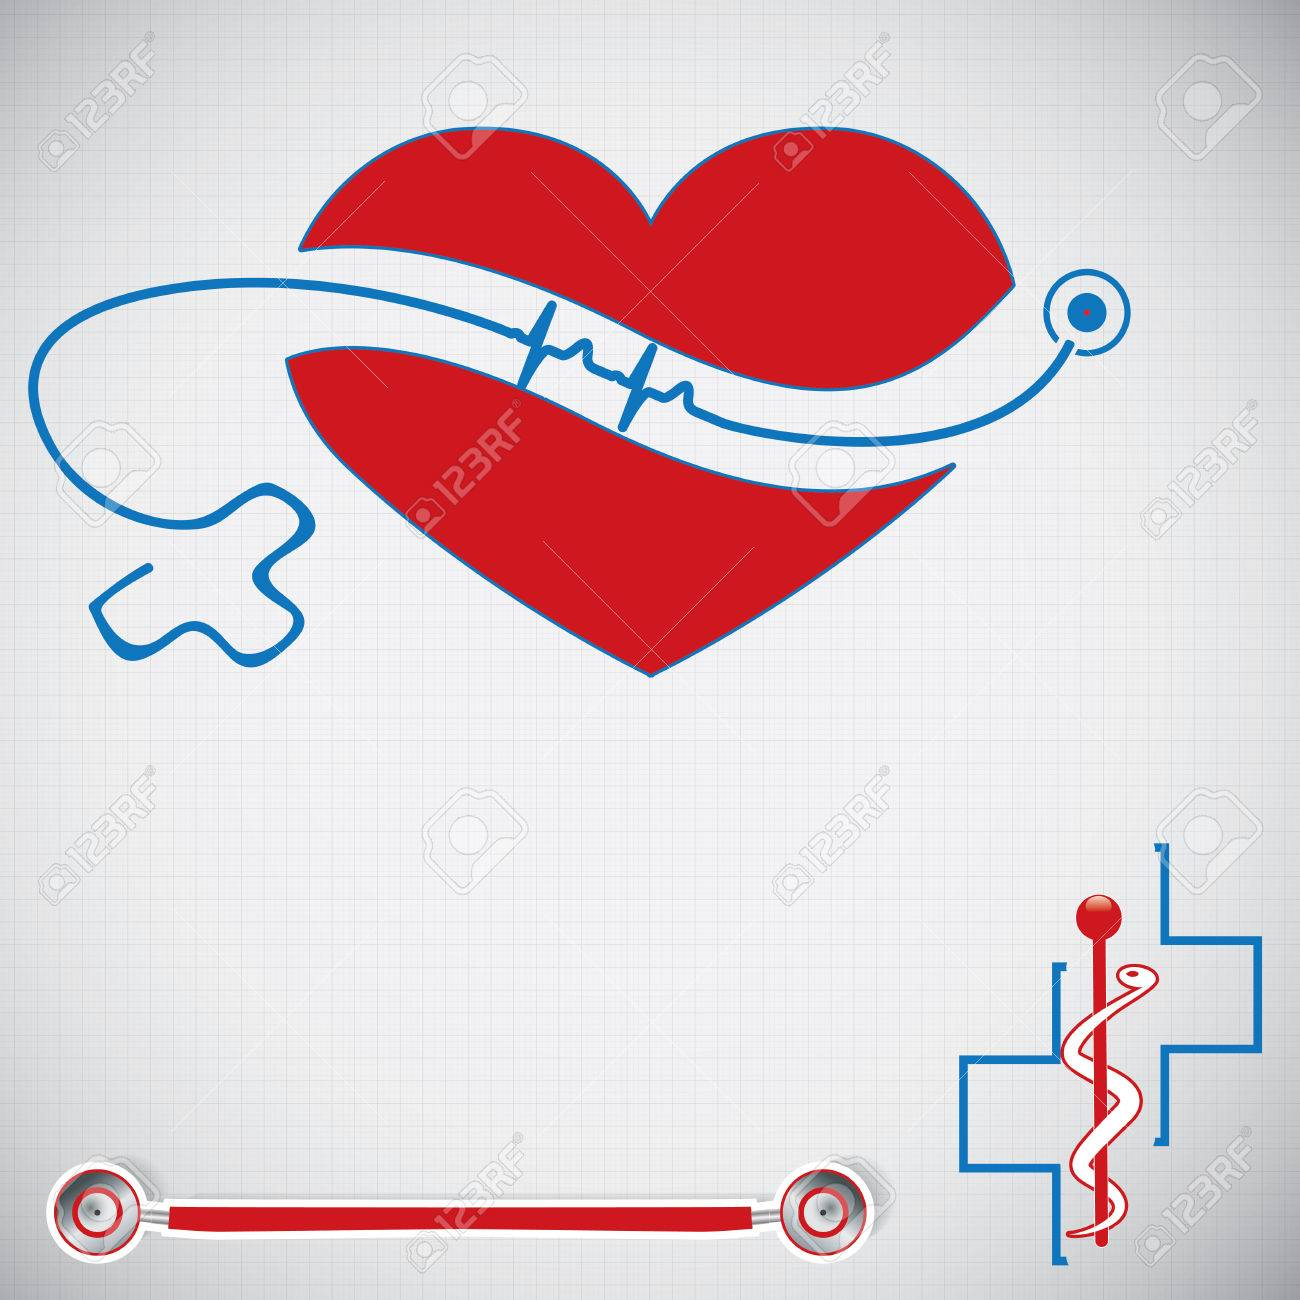 Abstract medical cardiology ekg vector background Stock Vector - 27344696